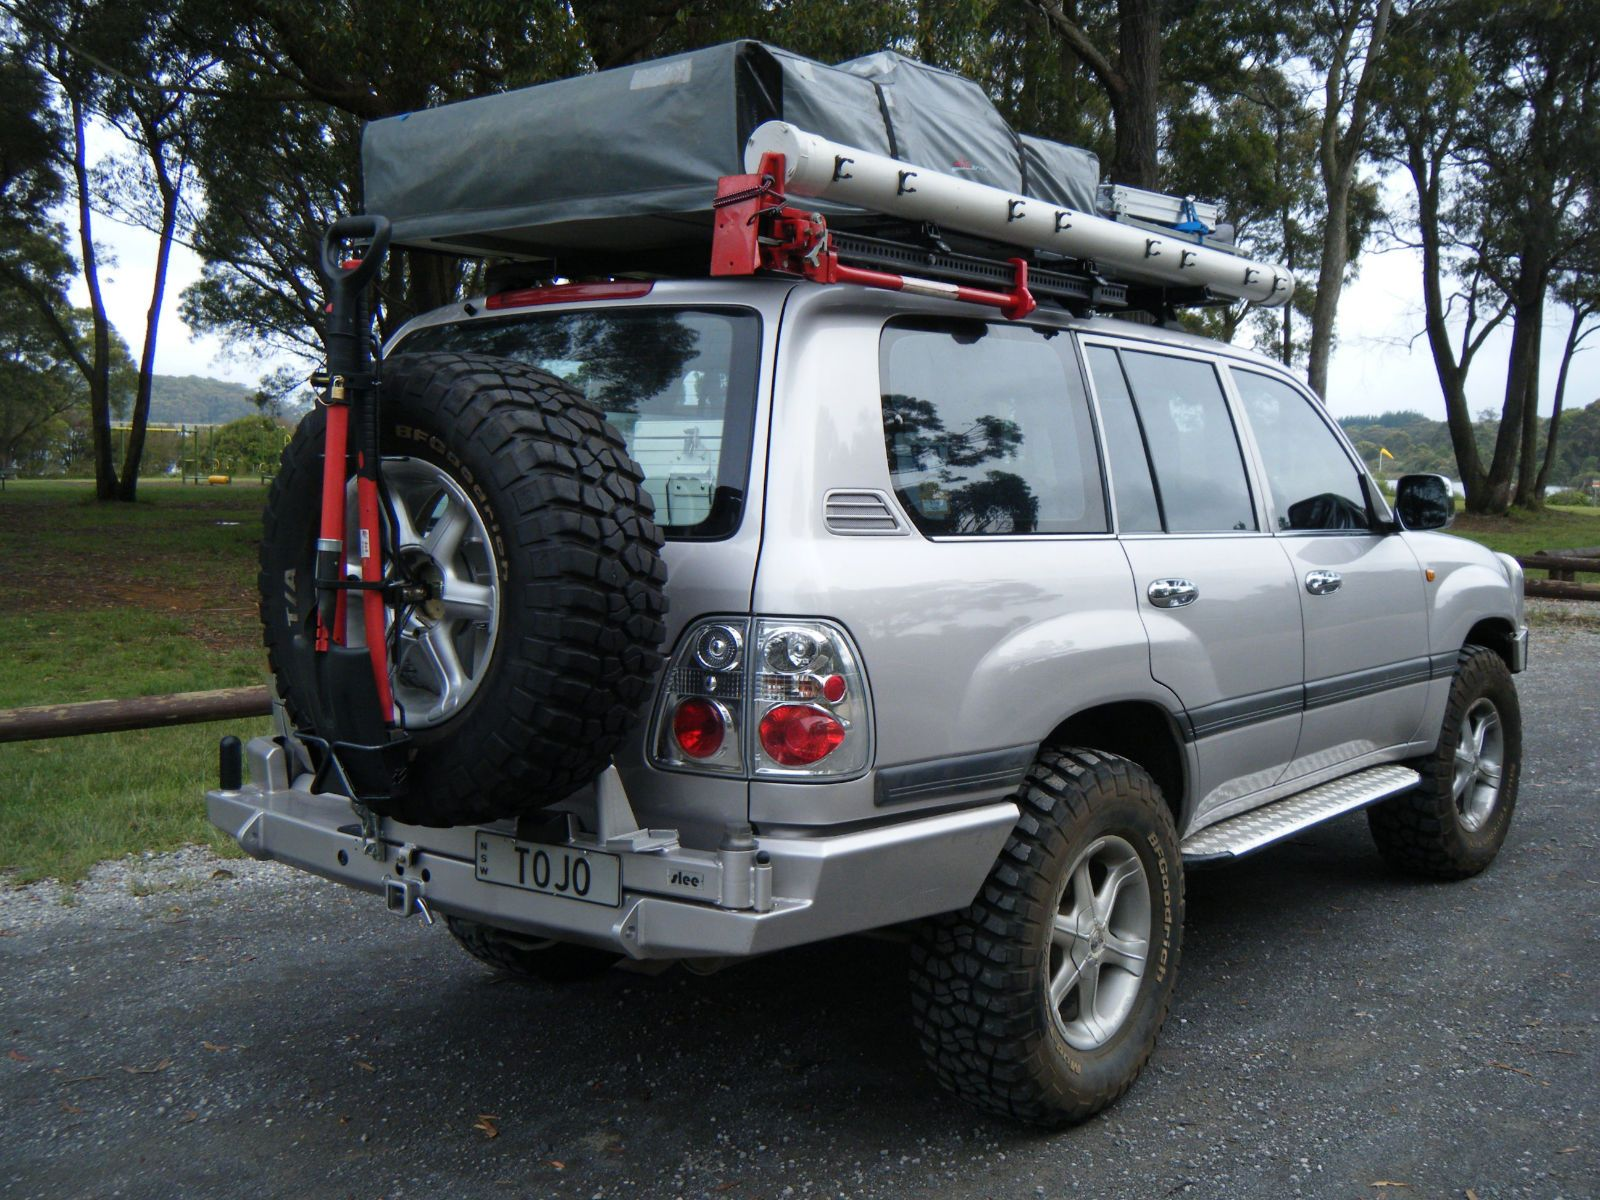 100 series expedition rig